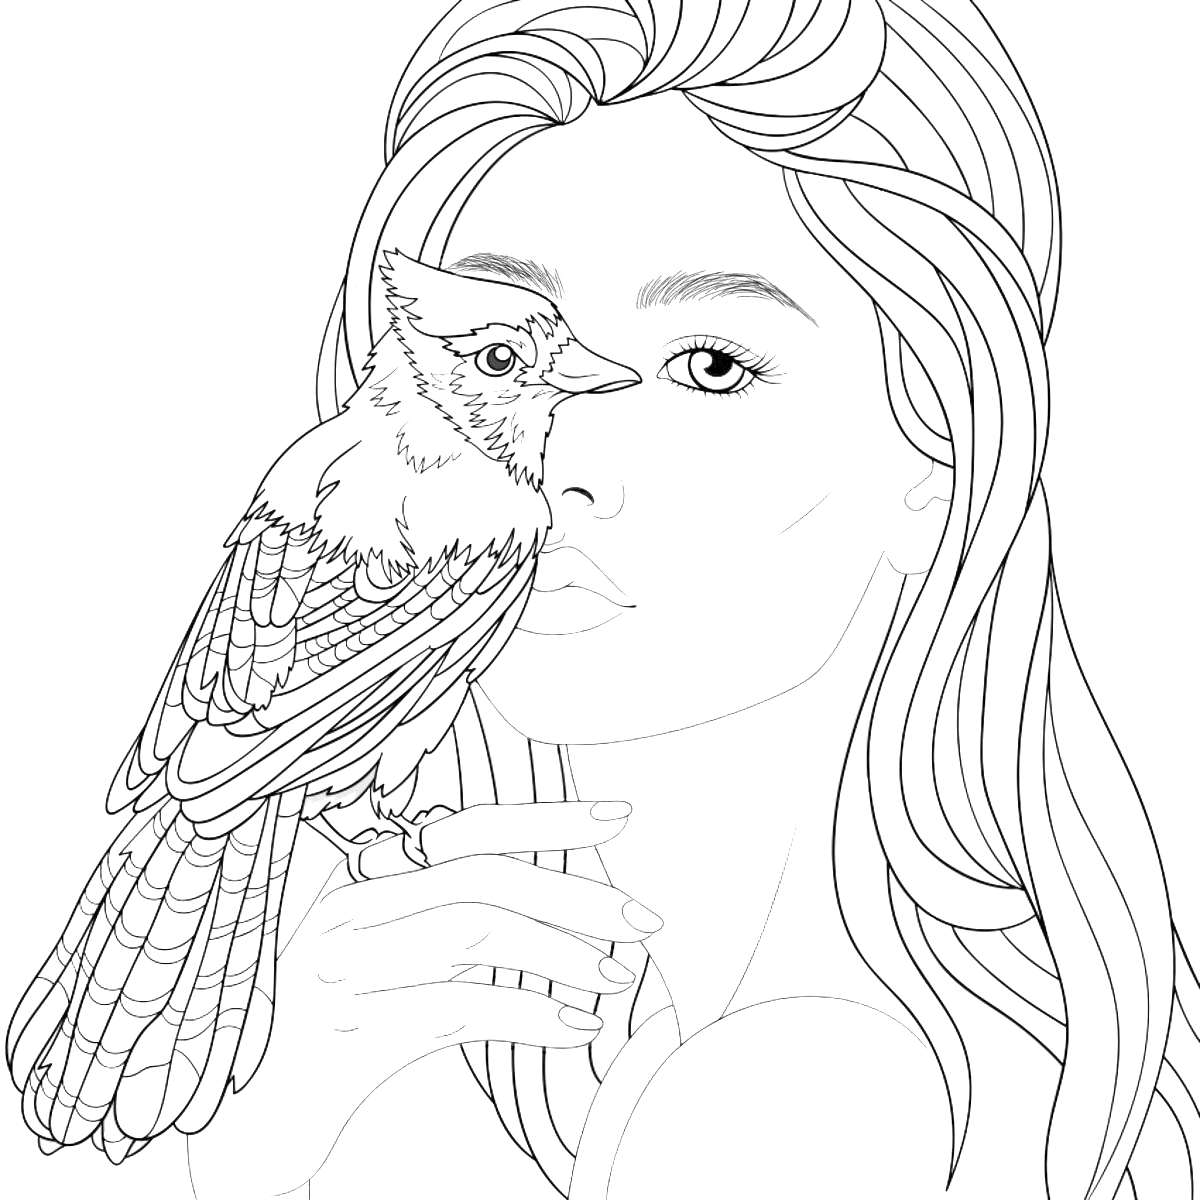 Pin By Ulab On Kolorowanki Mom Coloring Pages Fall Coloring Pages Coloring Pages To Print